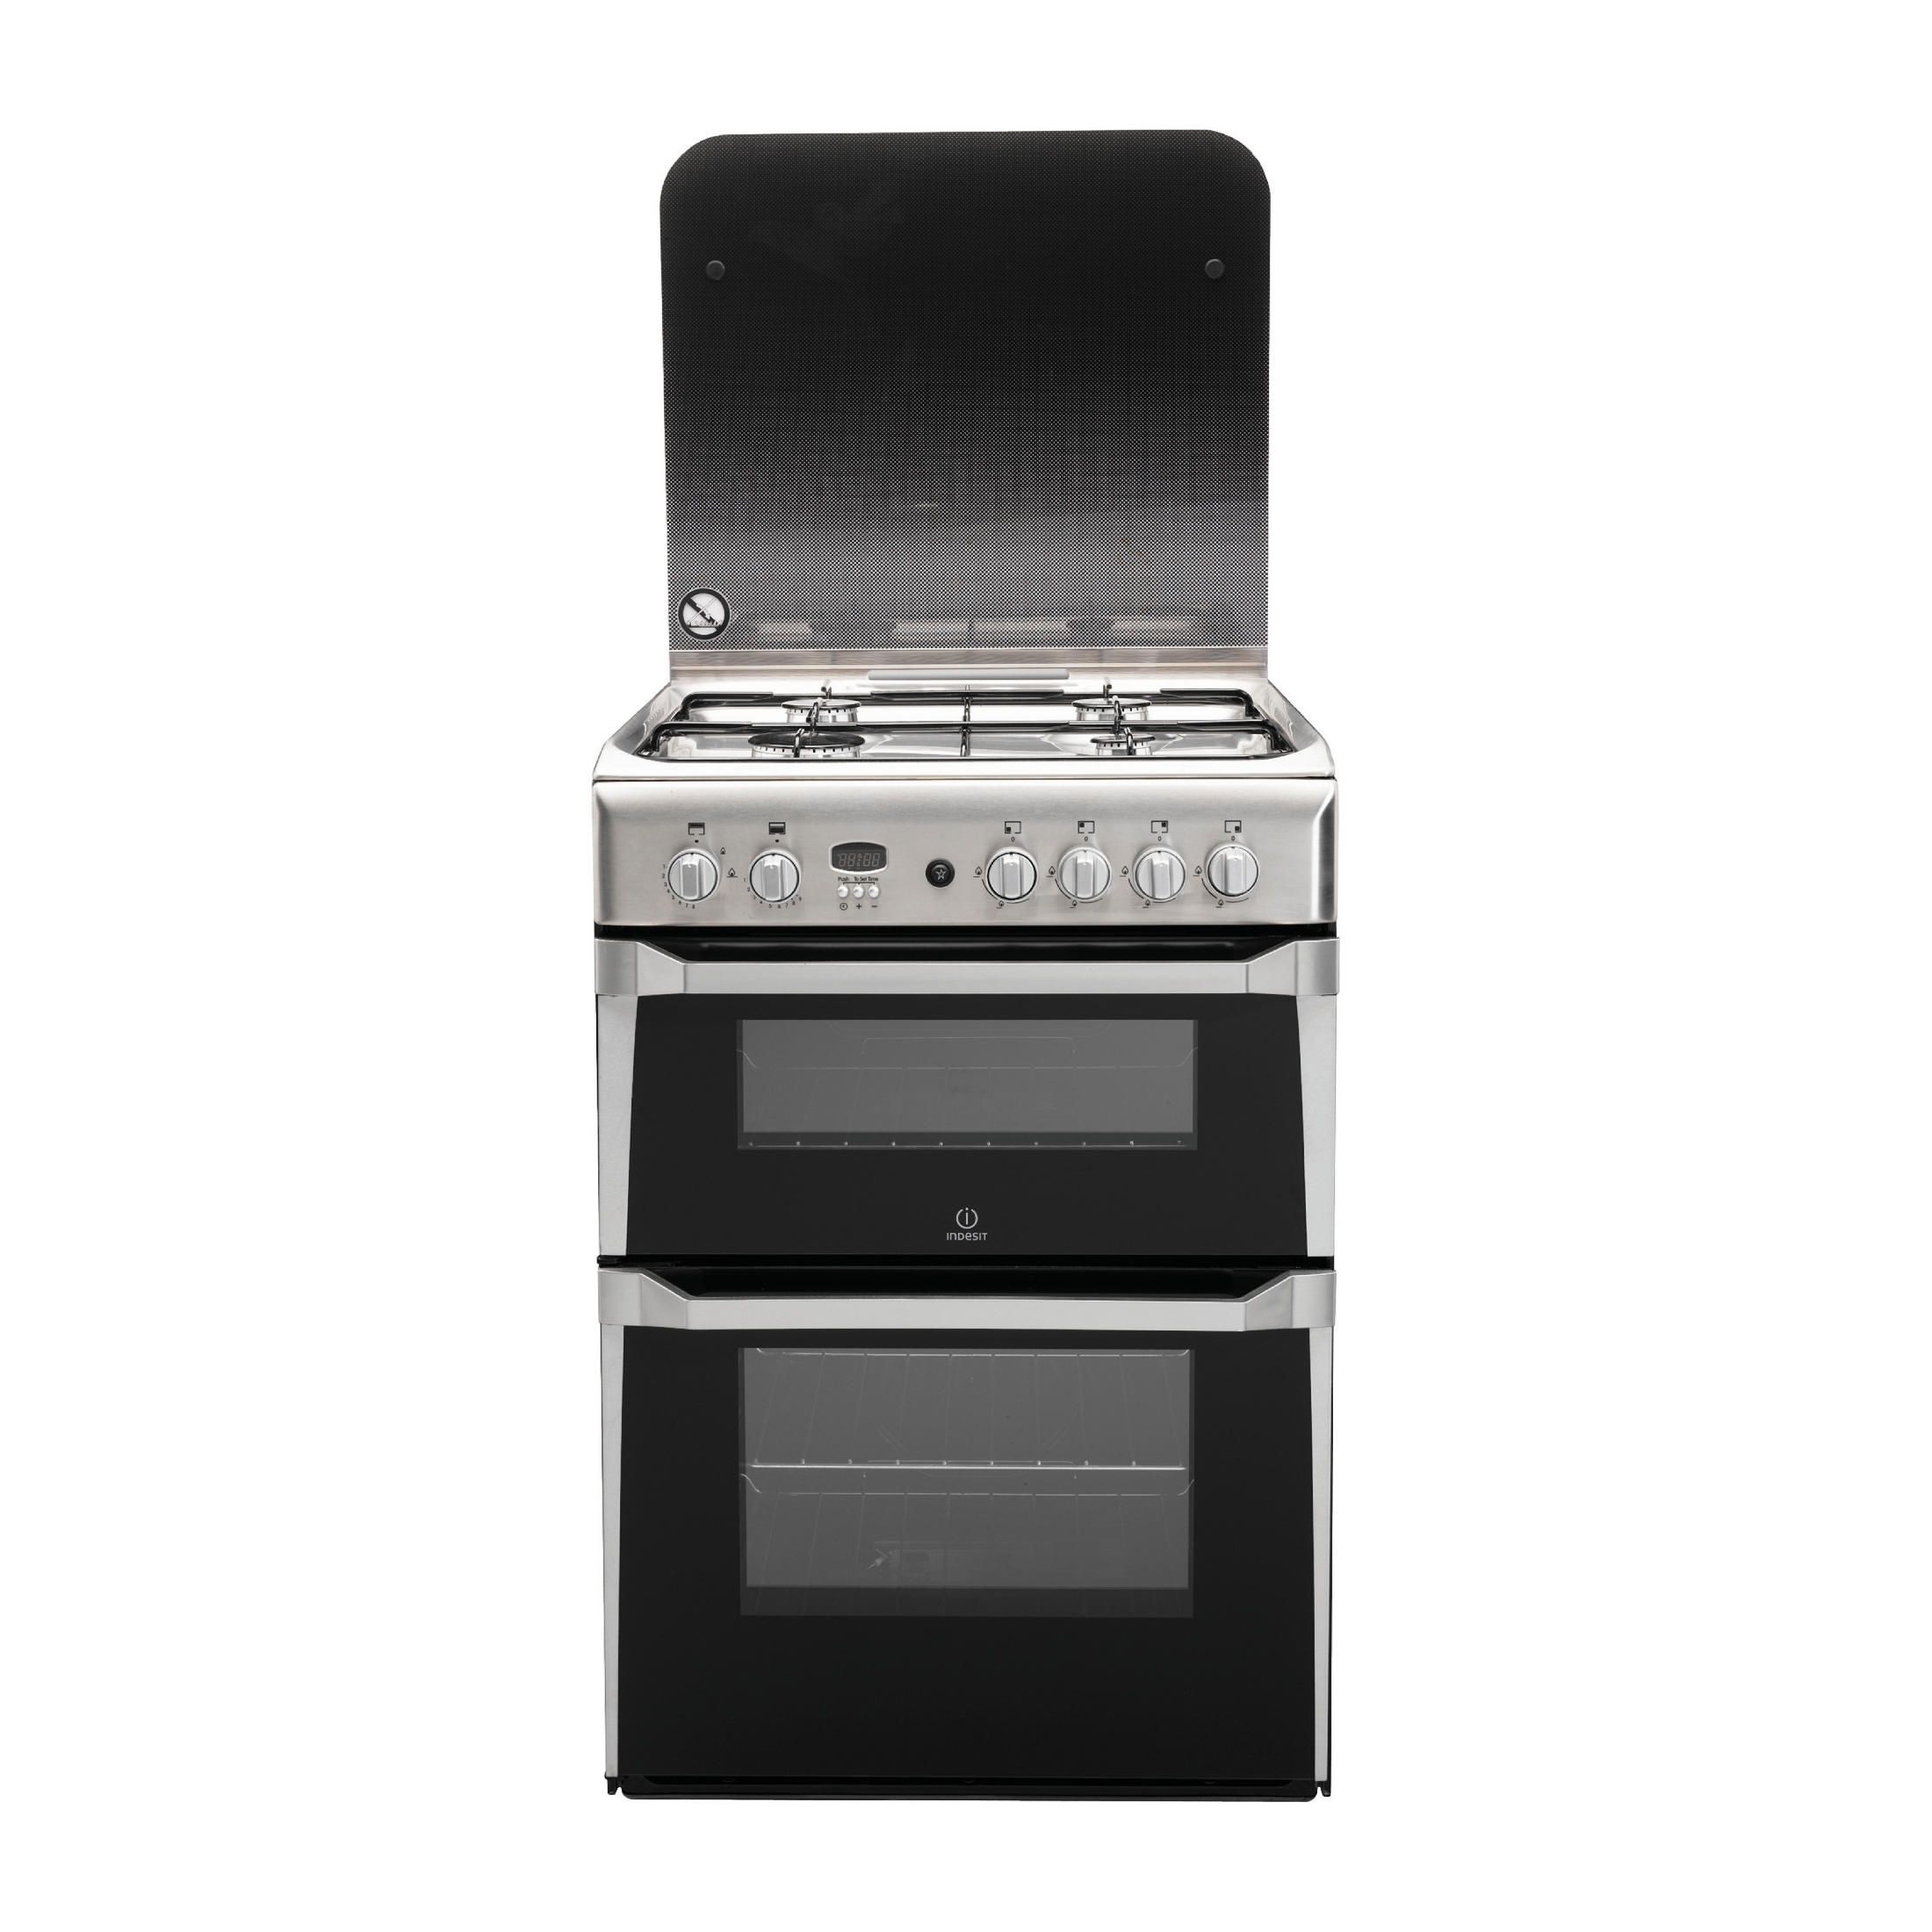 Indesit Id60g2x 4 Hob Double Gas Cooker Hughes